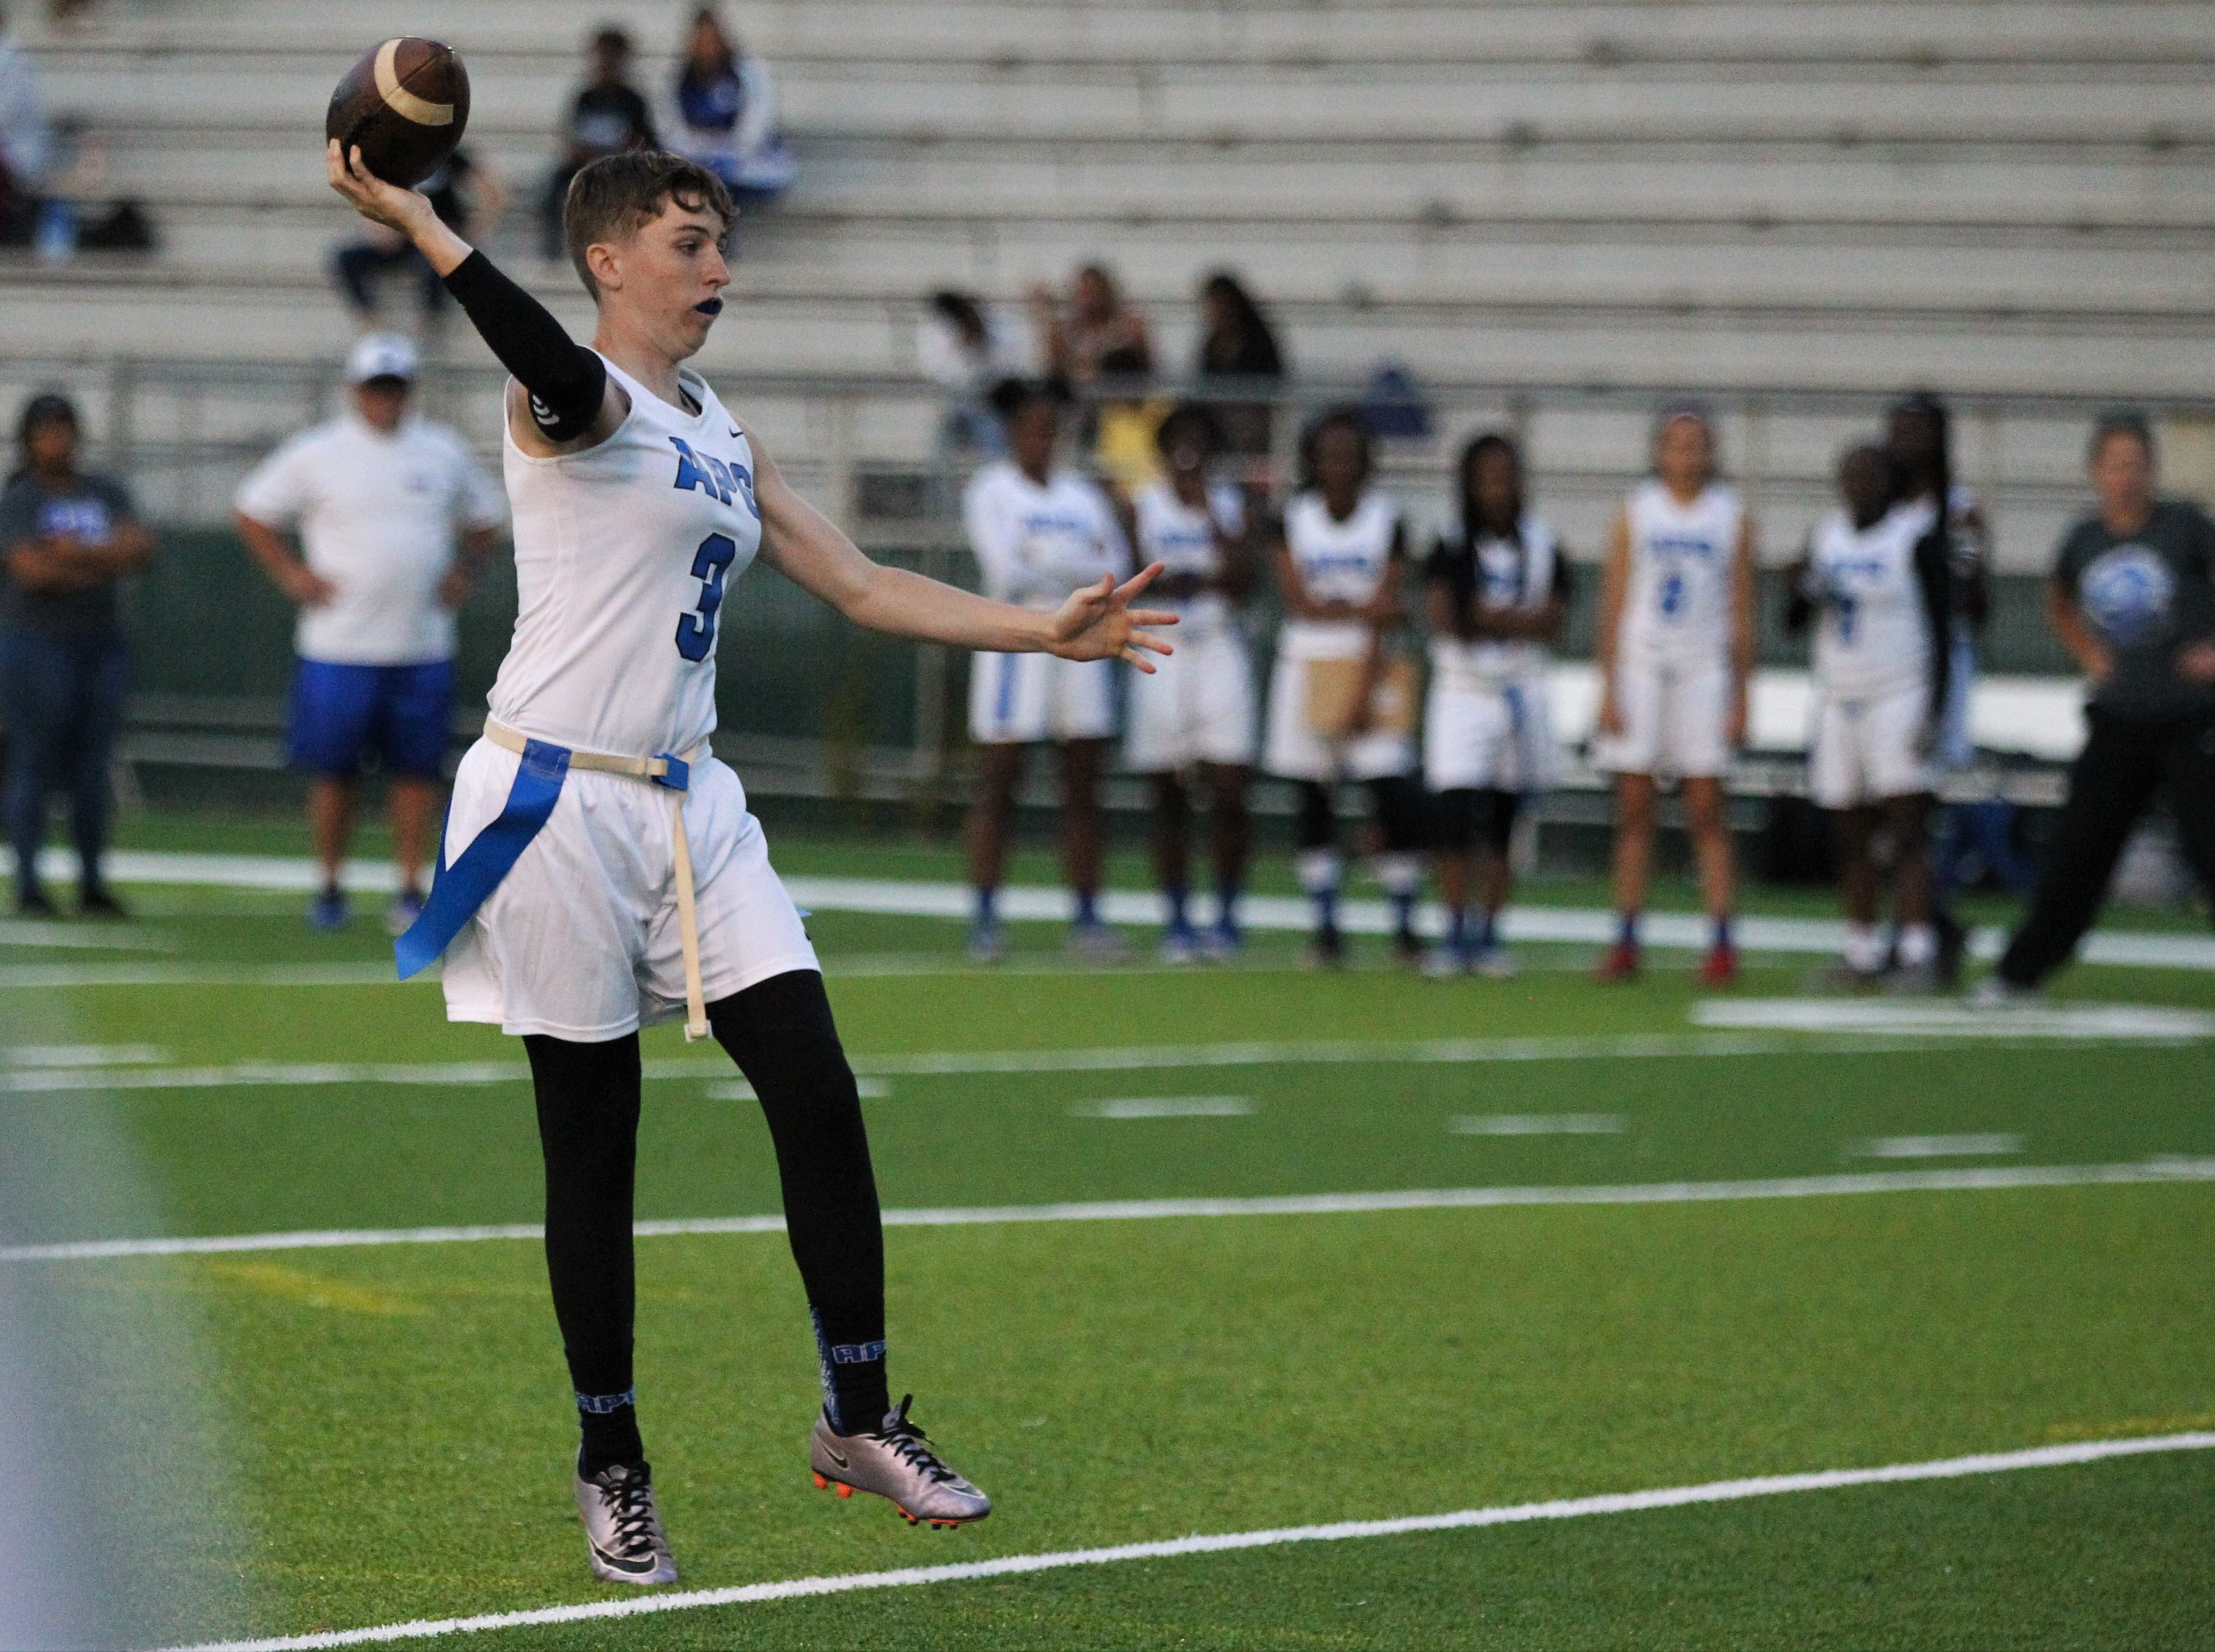 Godby senior quarterback Kaylene Colburn throws a pass as the Cougars' flag football team beat Lincoln 25-6 at Gene Cox Stadium on March 14, 2019.